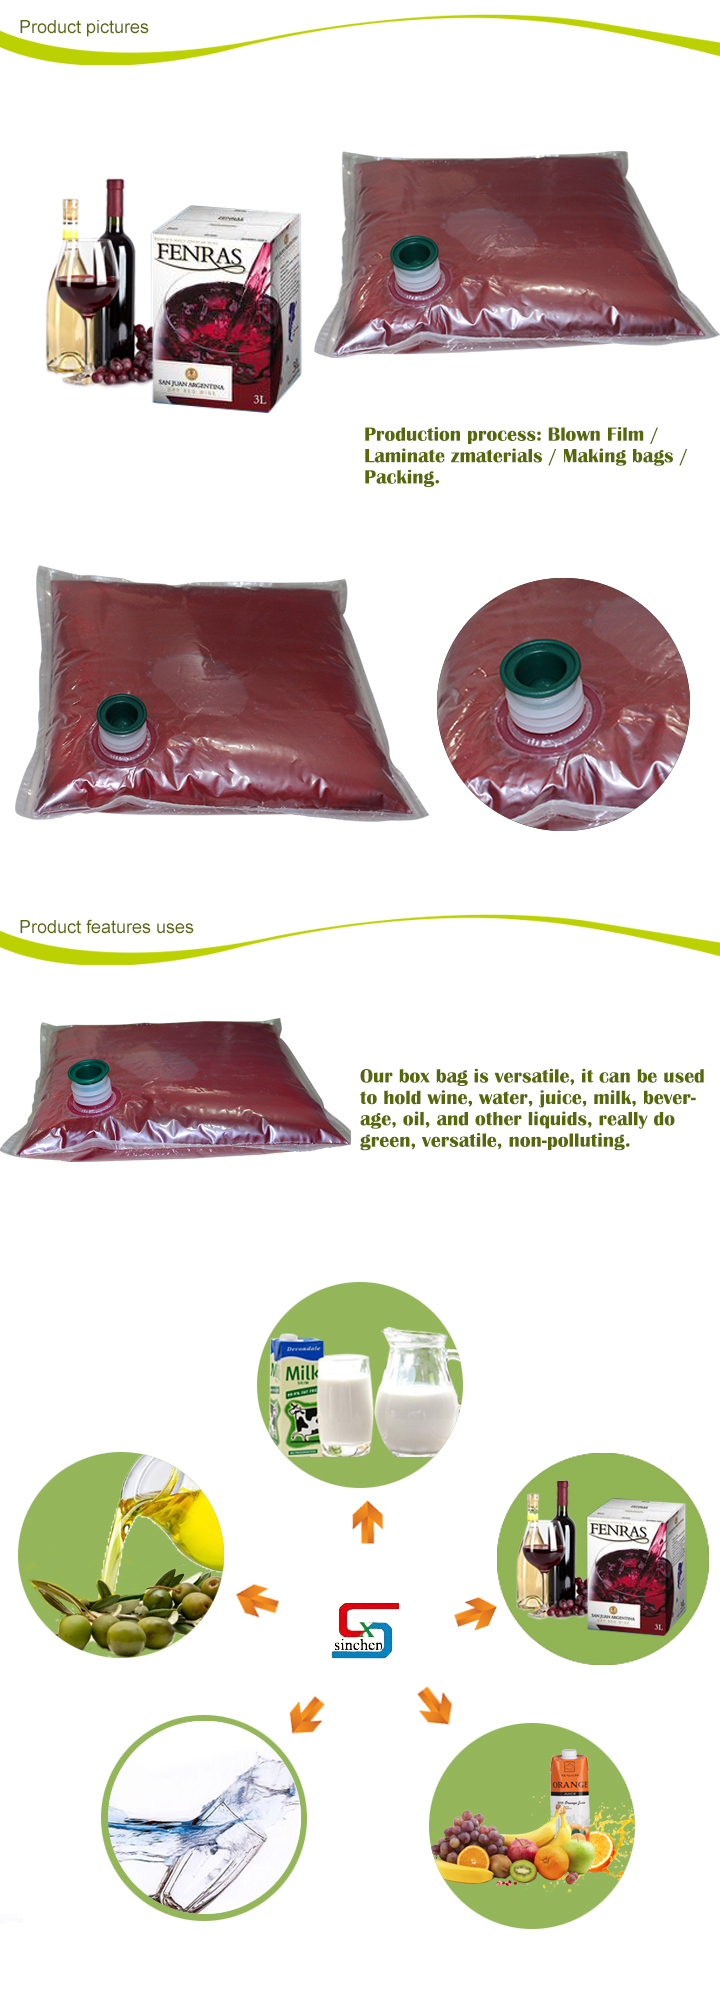 Green High quality wine bag in box with vitop valve